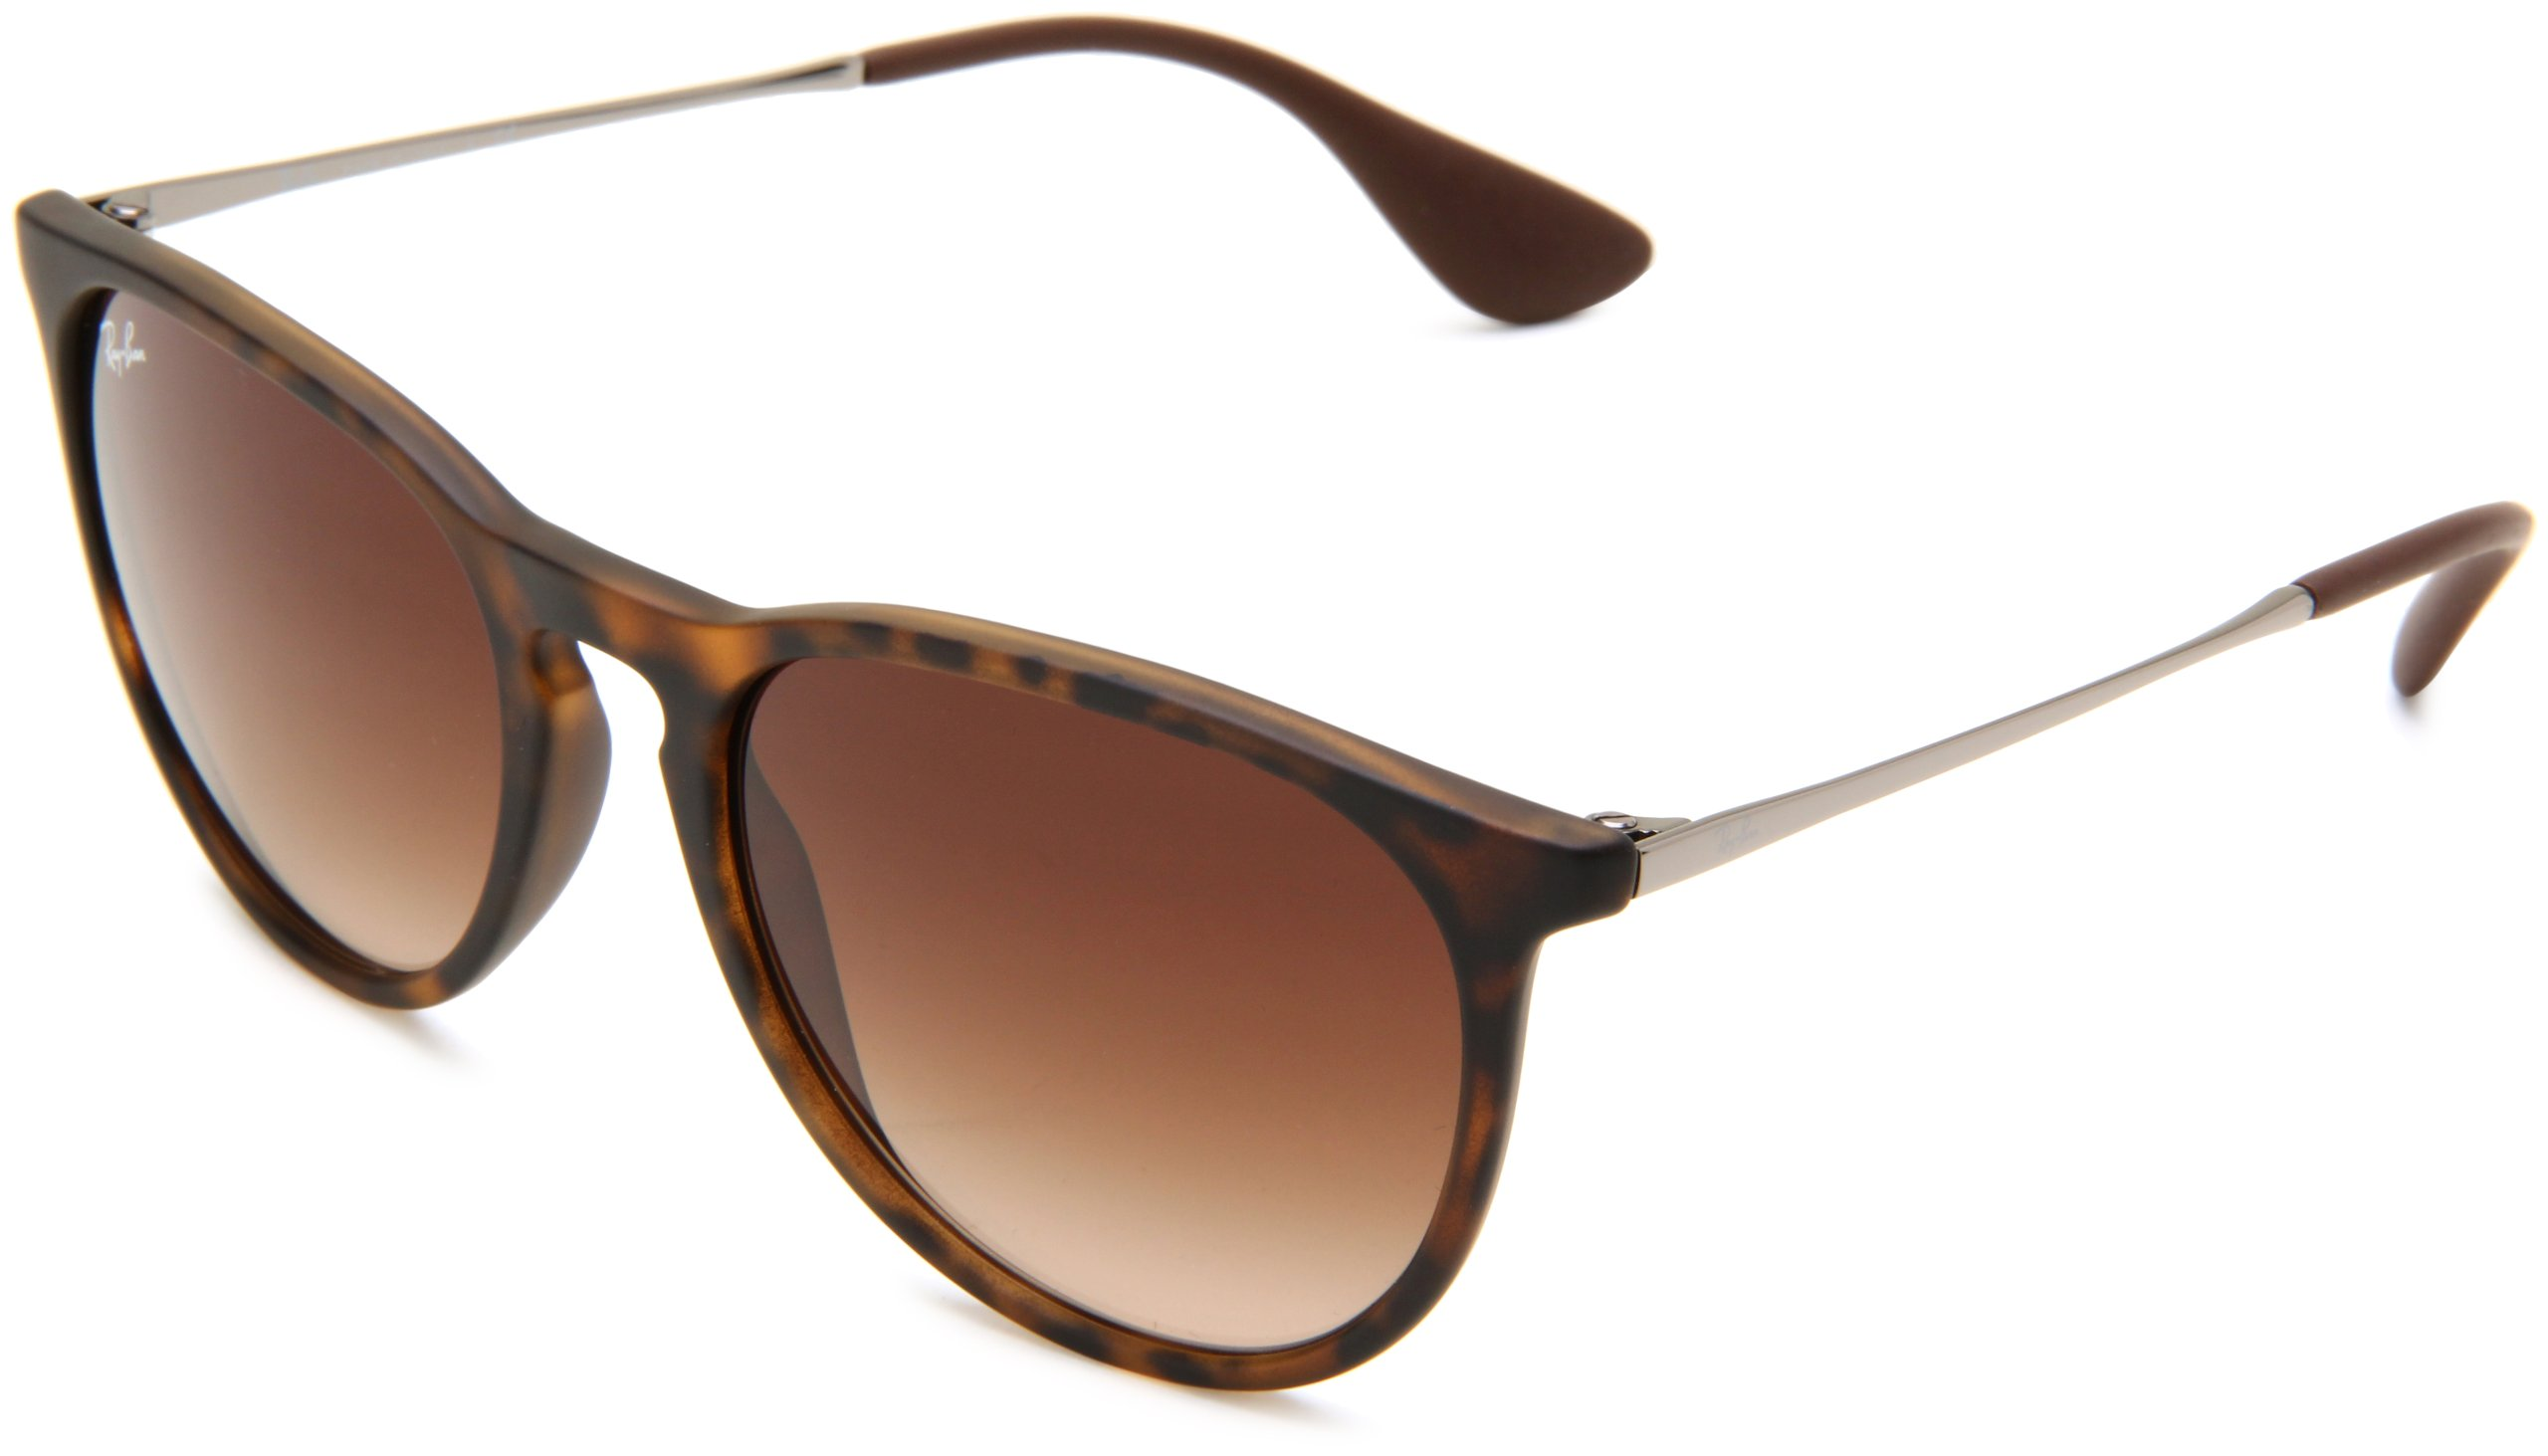 Ray Ban Glasses Frames For Ladies : Ray-Ban Womens Erika Wayfarer Sunglasses Tortoise Frame ...